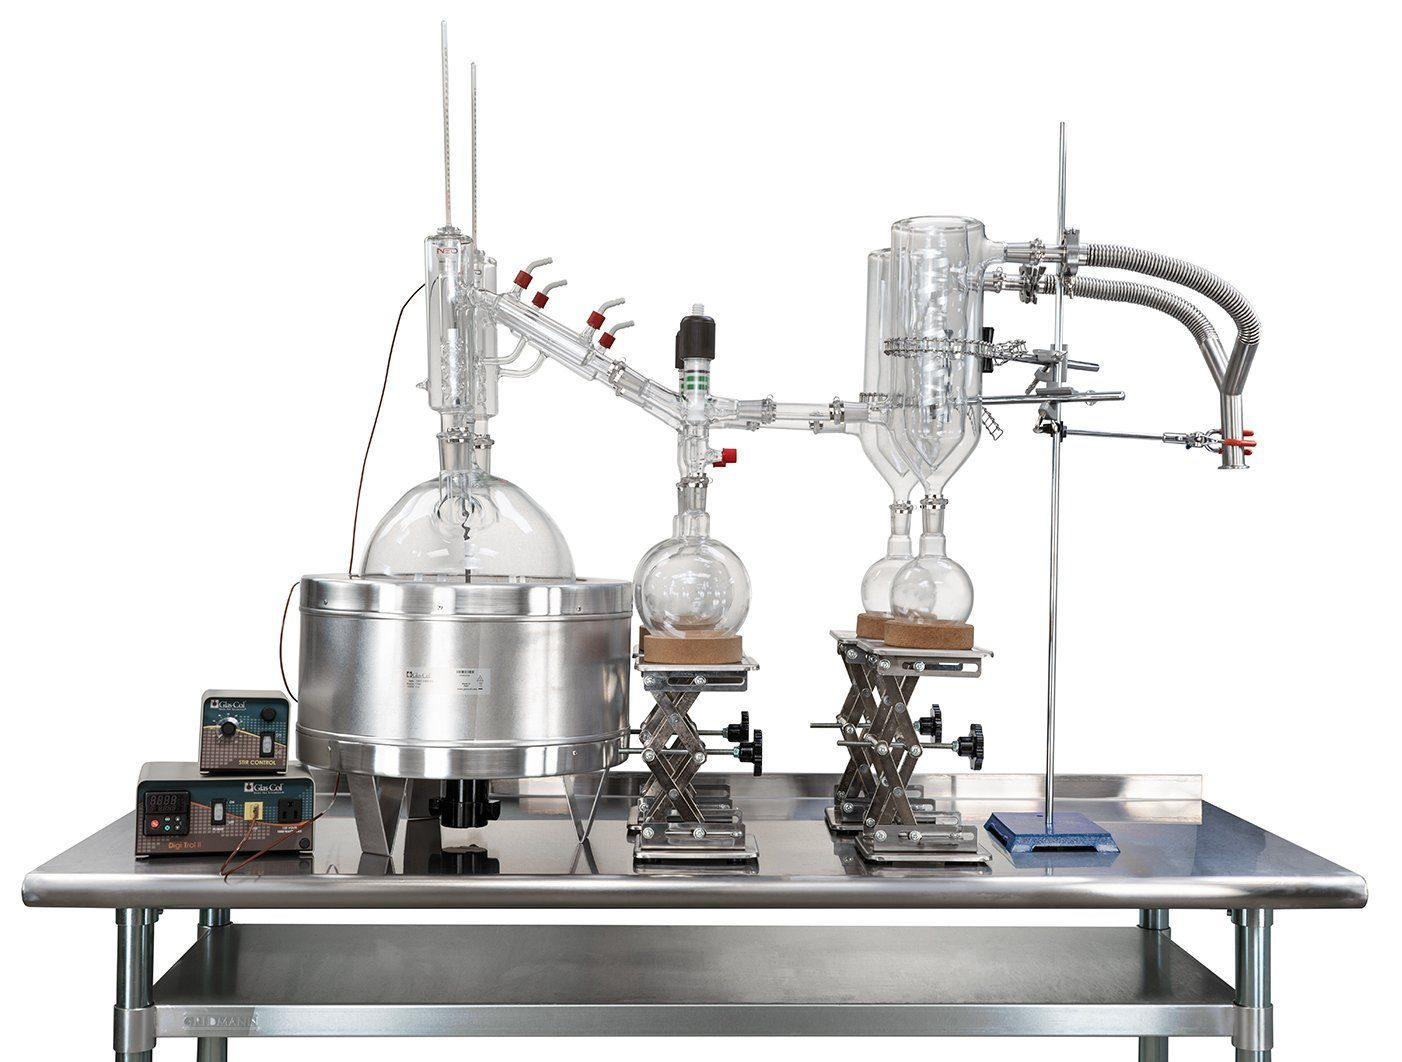 10L Neocision Dual Head Short Path Distillation Turnkey System Shop All Categories Neocision